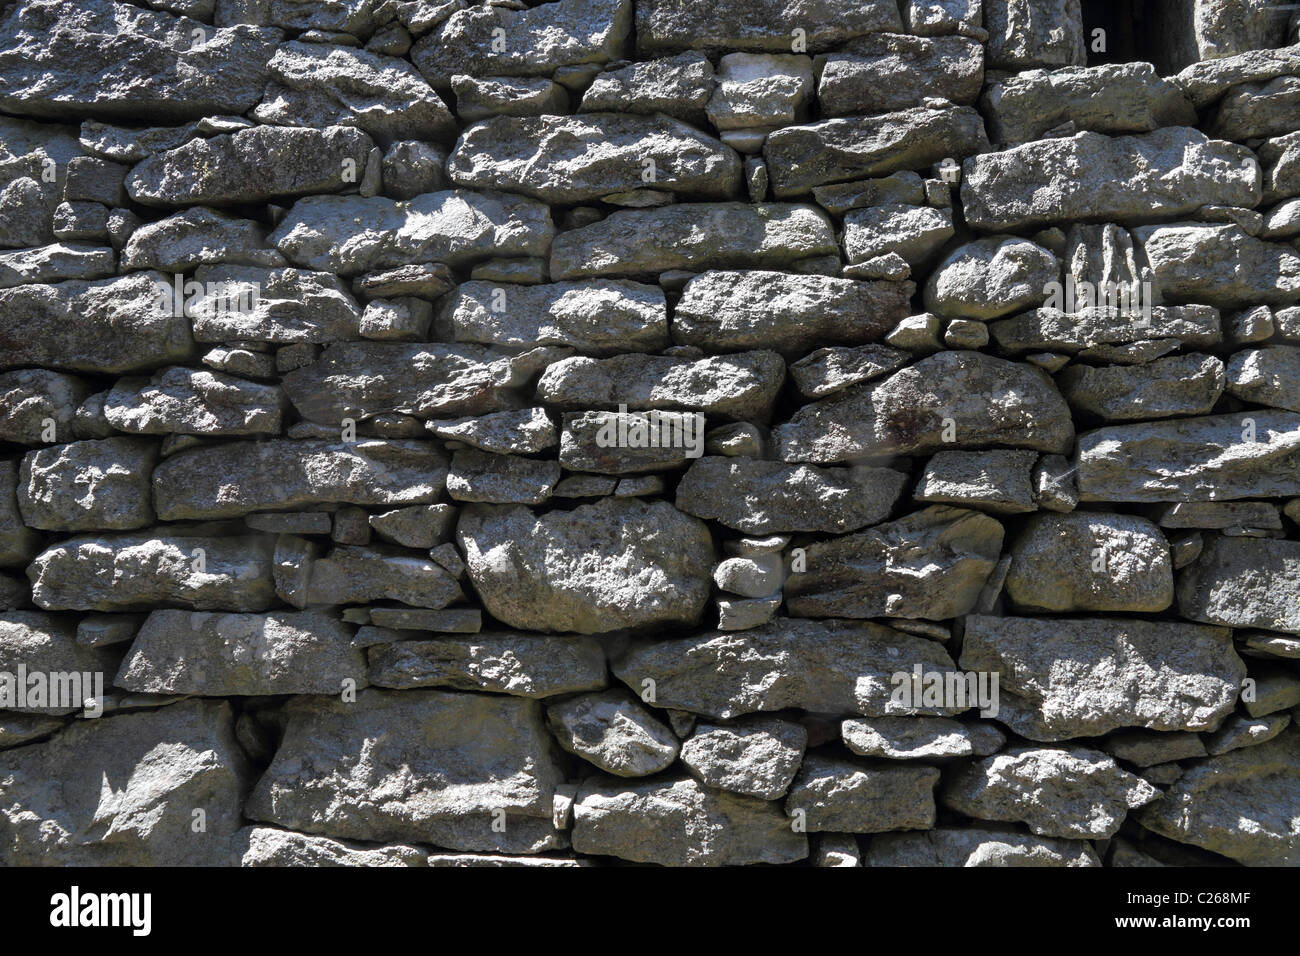 drystone wall put up put of gray rock slanted by the sun - Stock Image